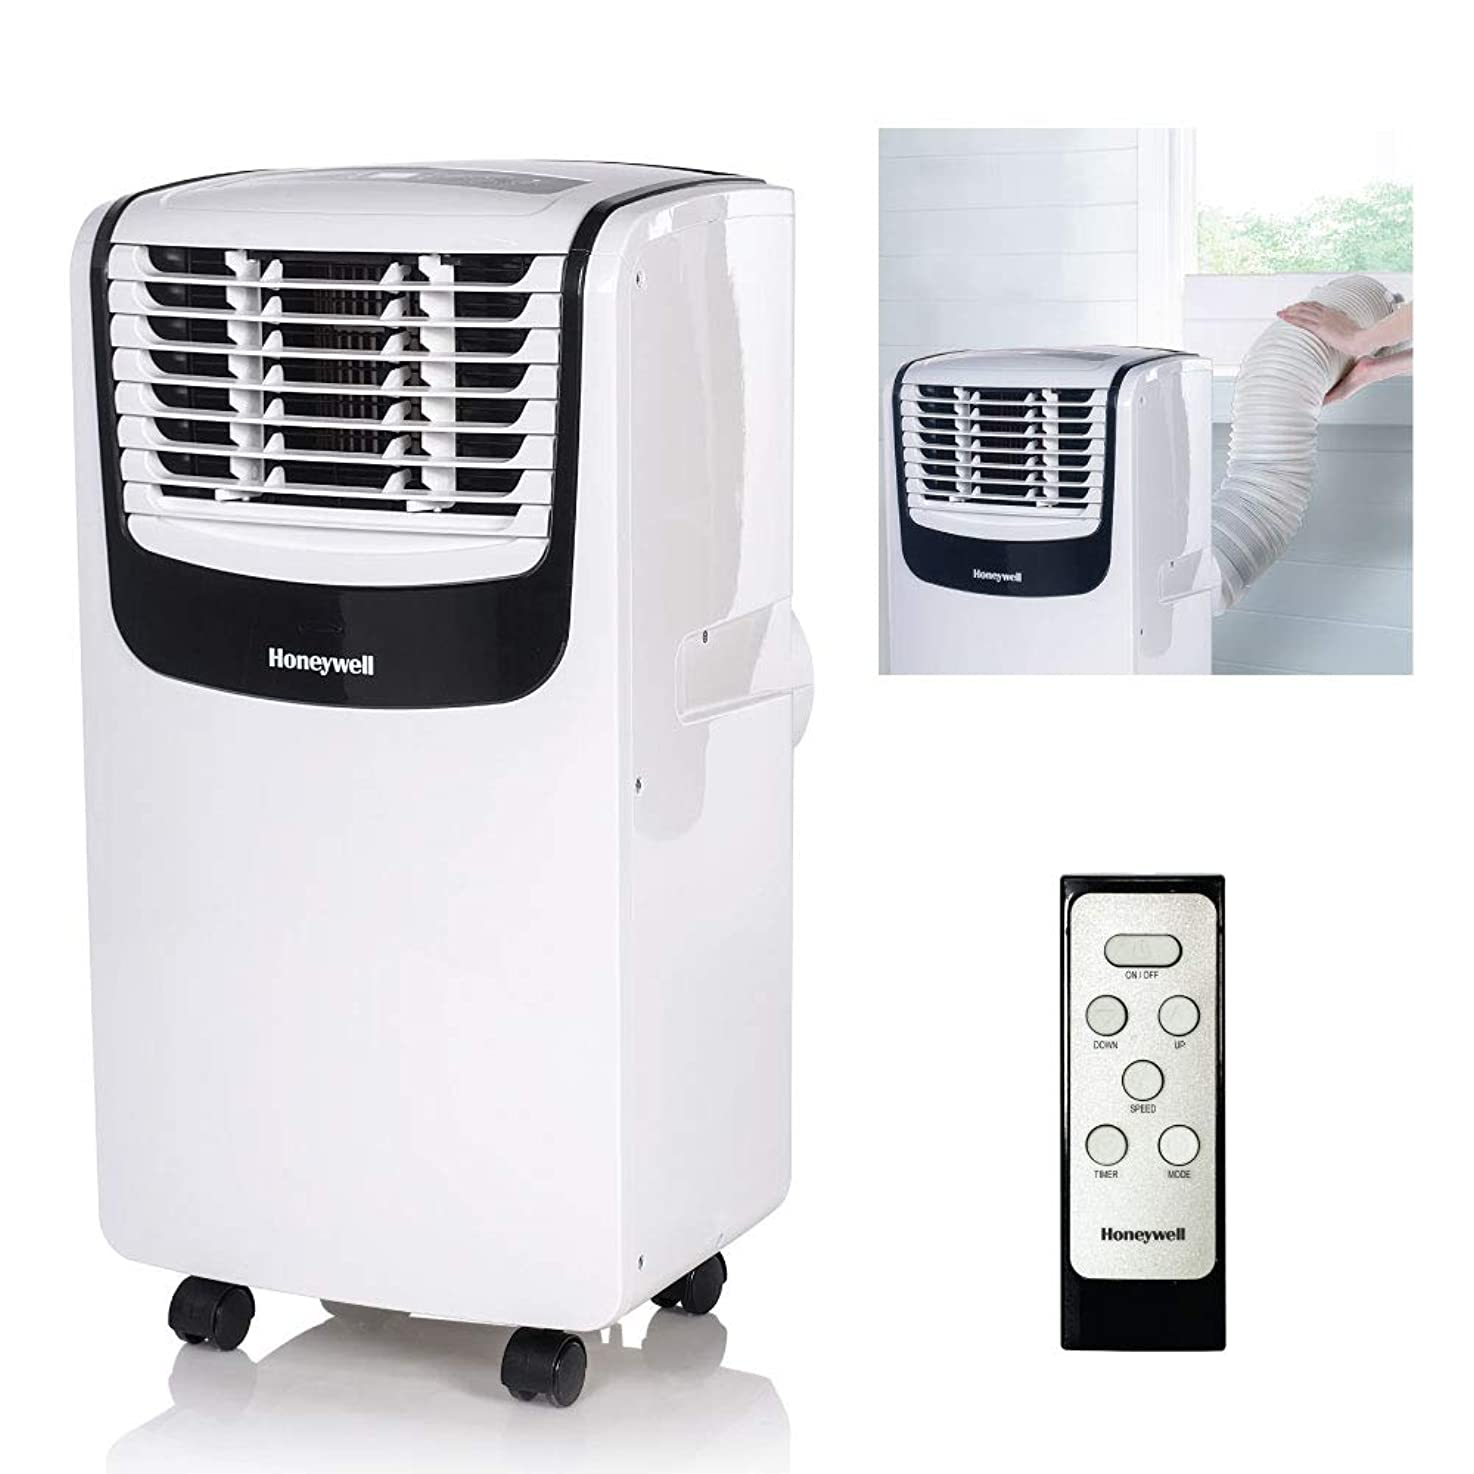 Honeywell MO Series Compact 3-in-1 Portable Air Conditioner White/Black vbqwoeskxjevn2